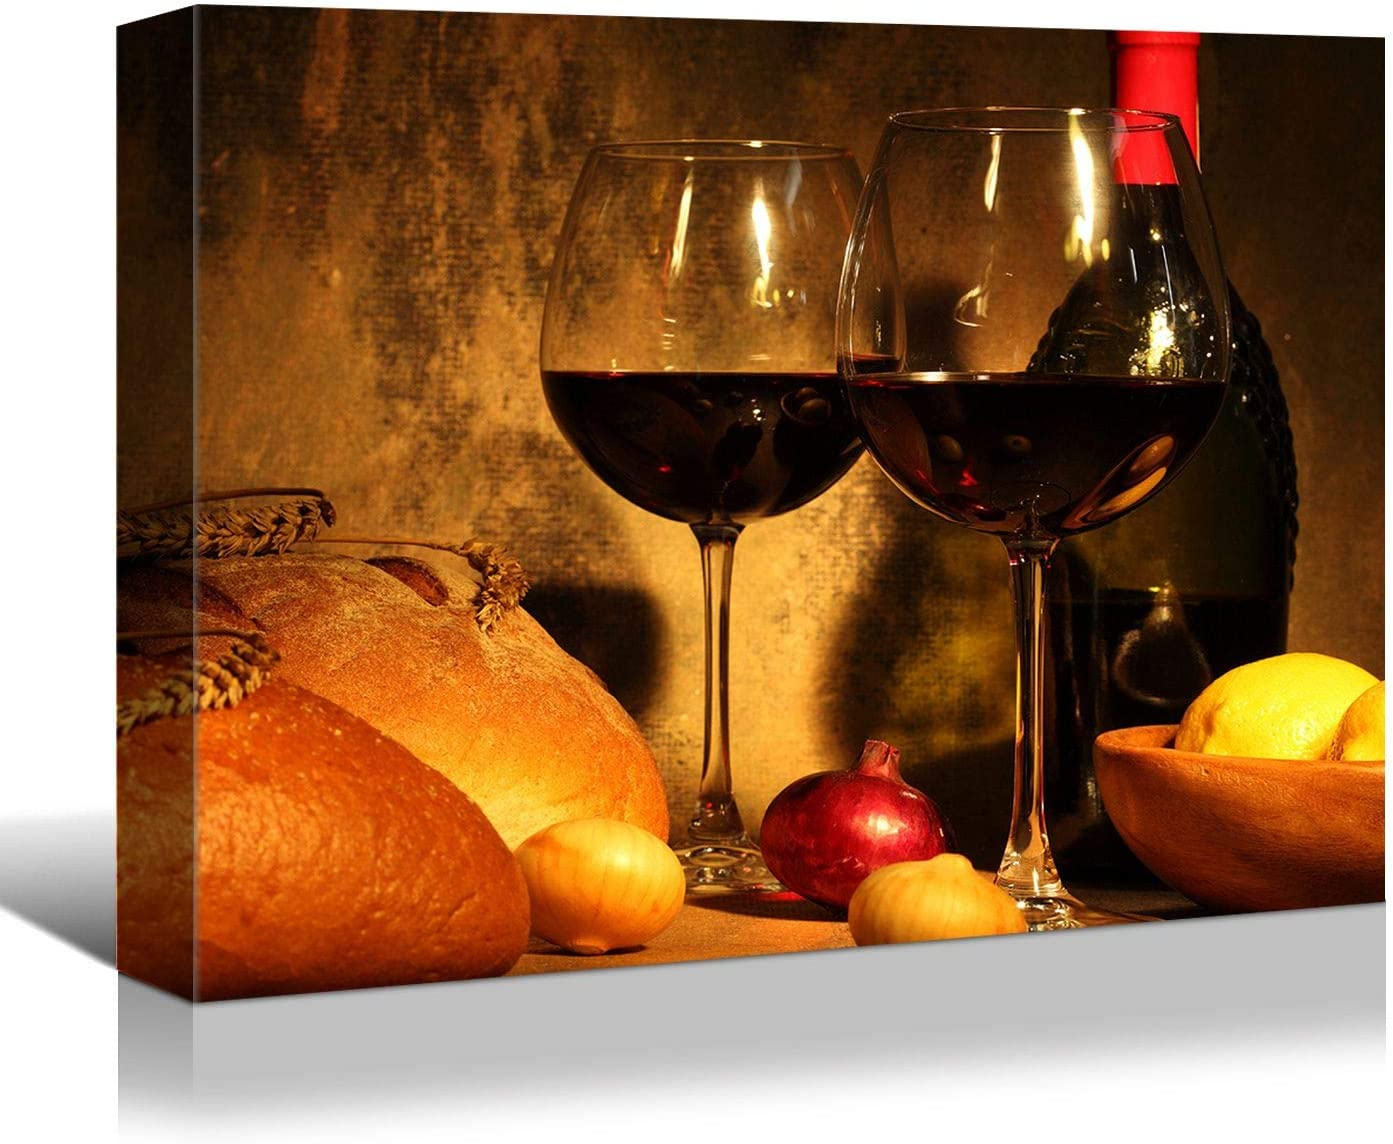 Looife Kitchen Still Life Canvas Wall Art, 16x12 Inch Gallery Wrapped Wine Cup with Bread Picture Prints Wall Decor, Food Art Deco for Dining Room and Bar